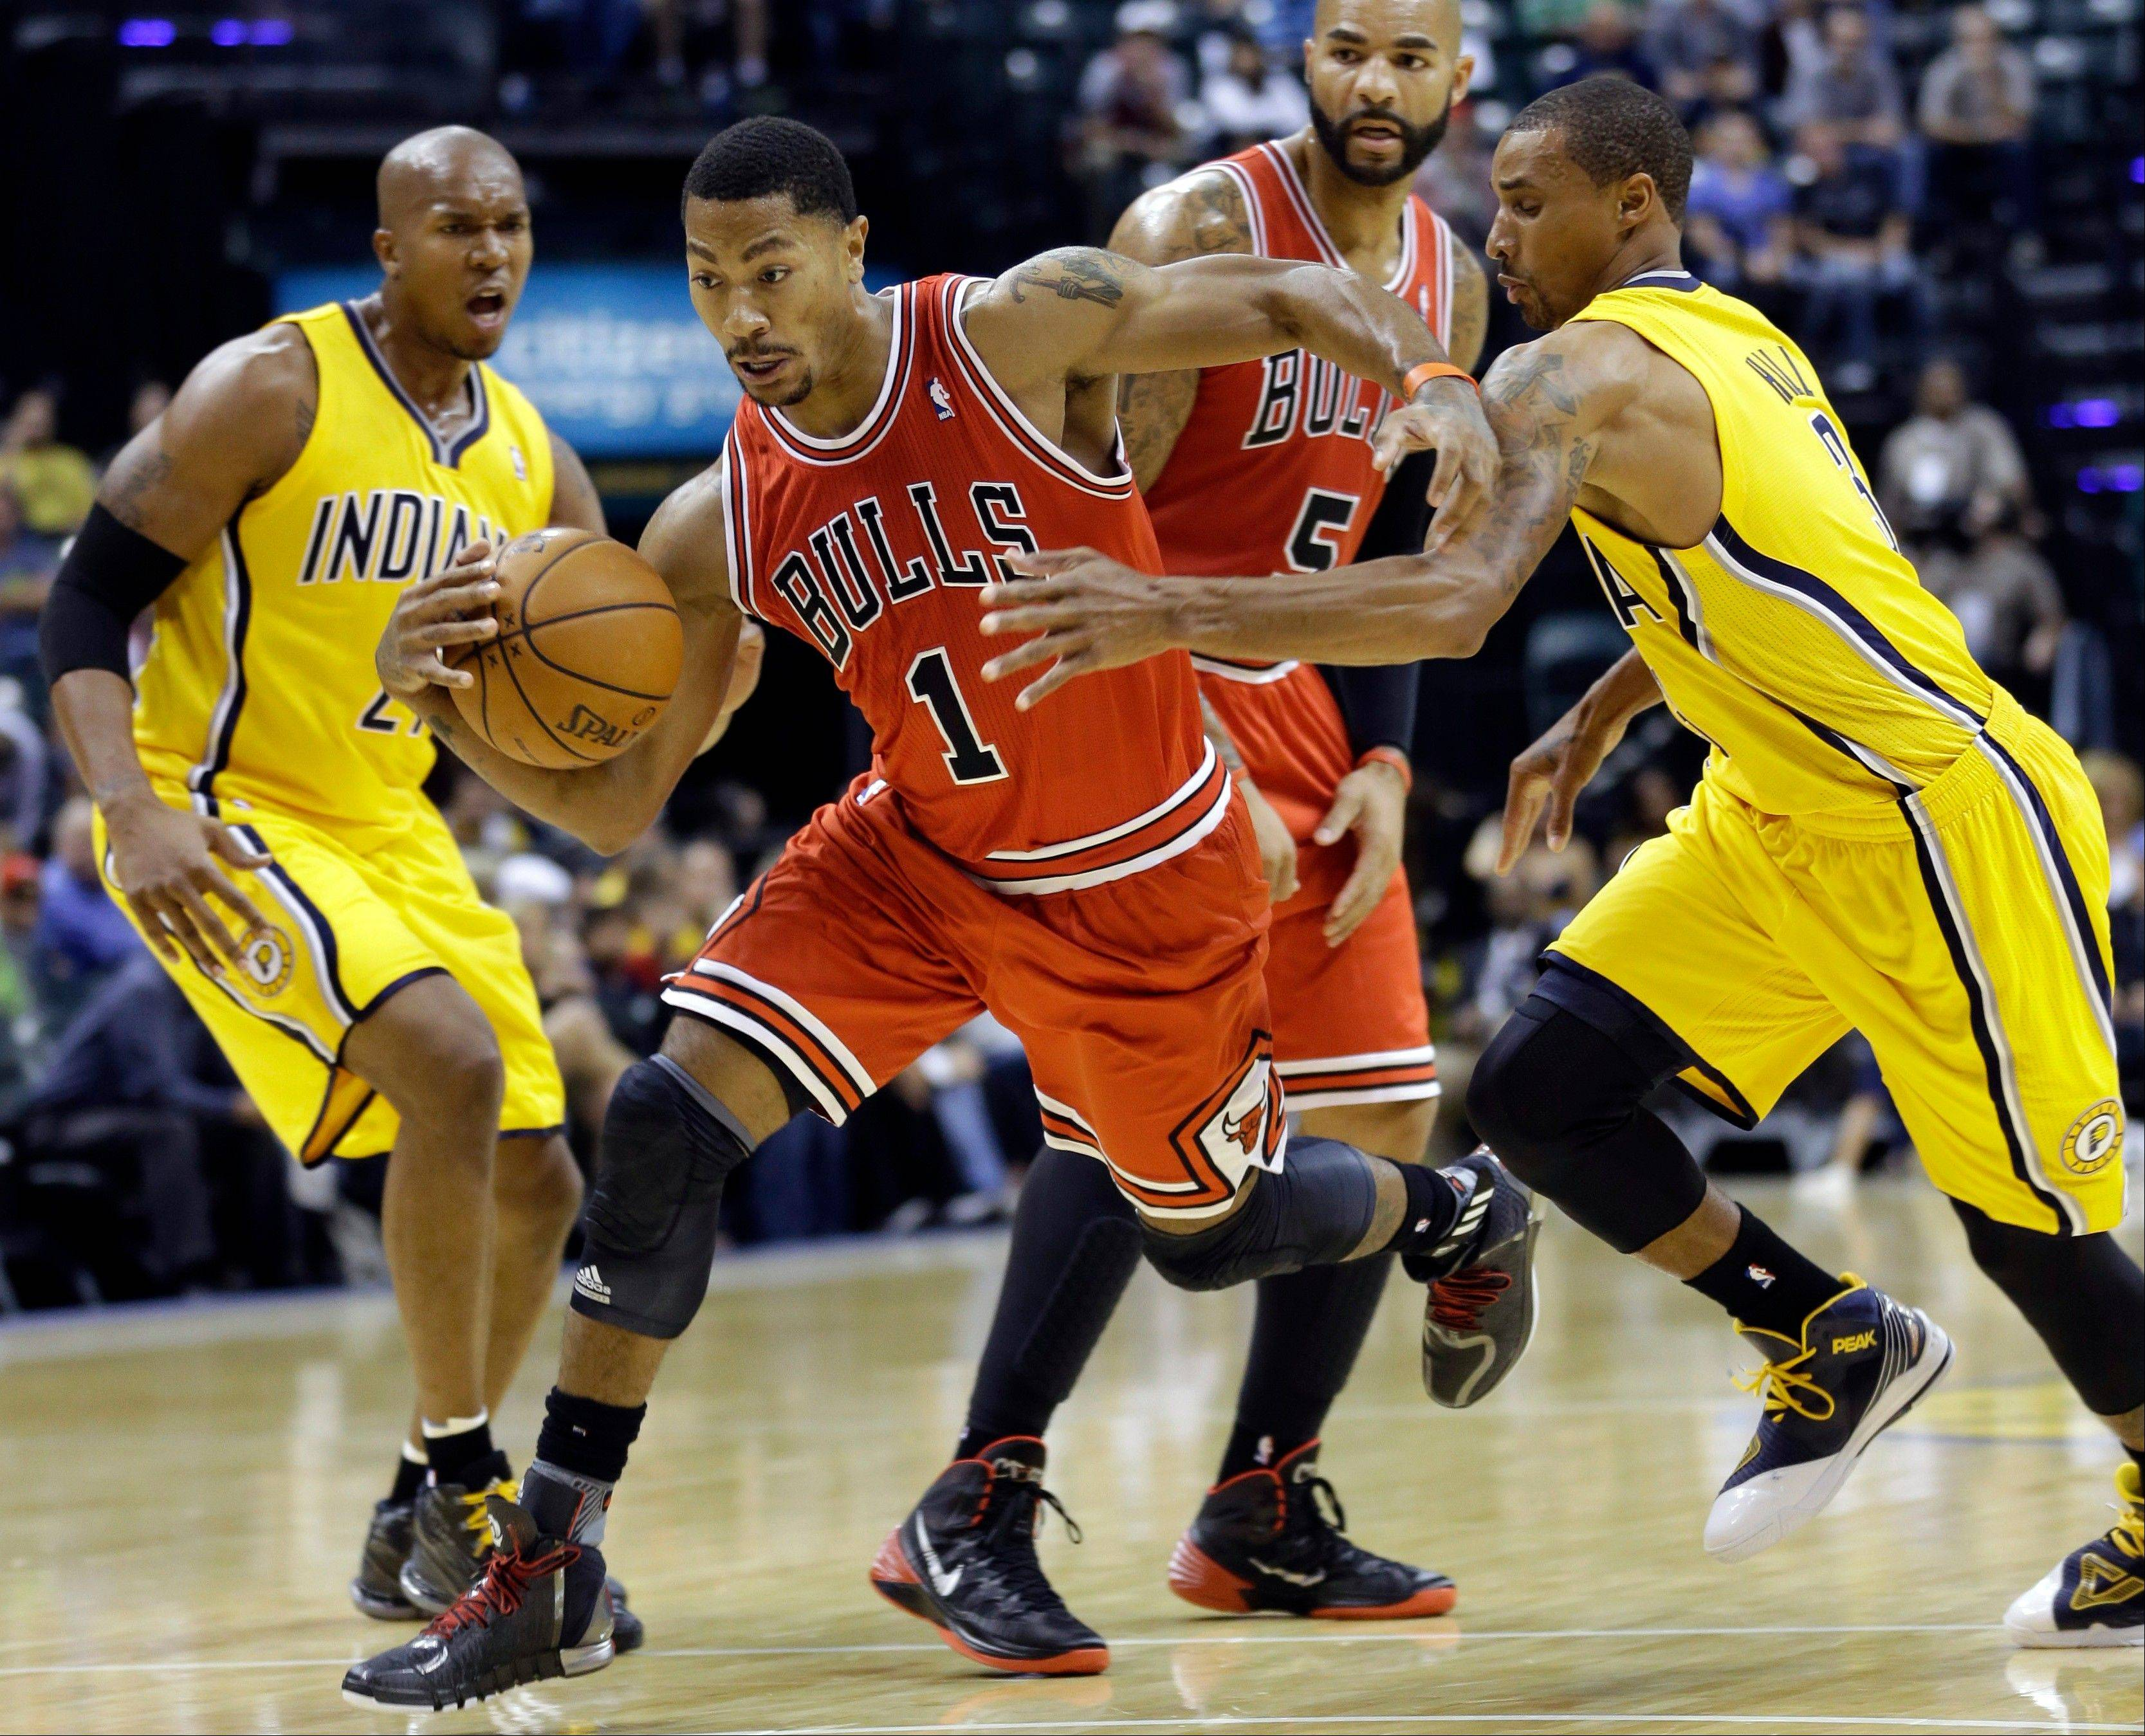 Rose looks strong in return to Bulls